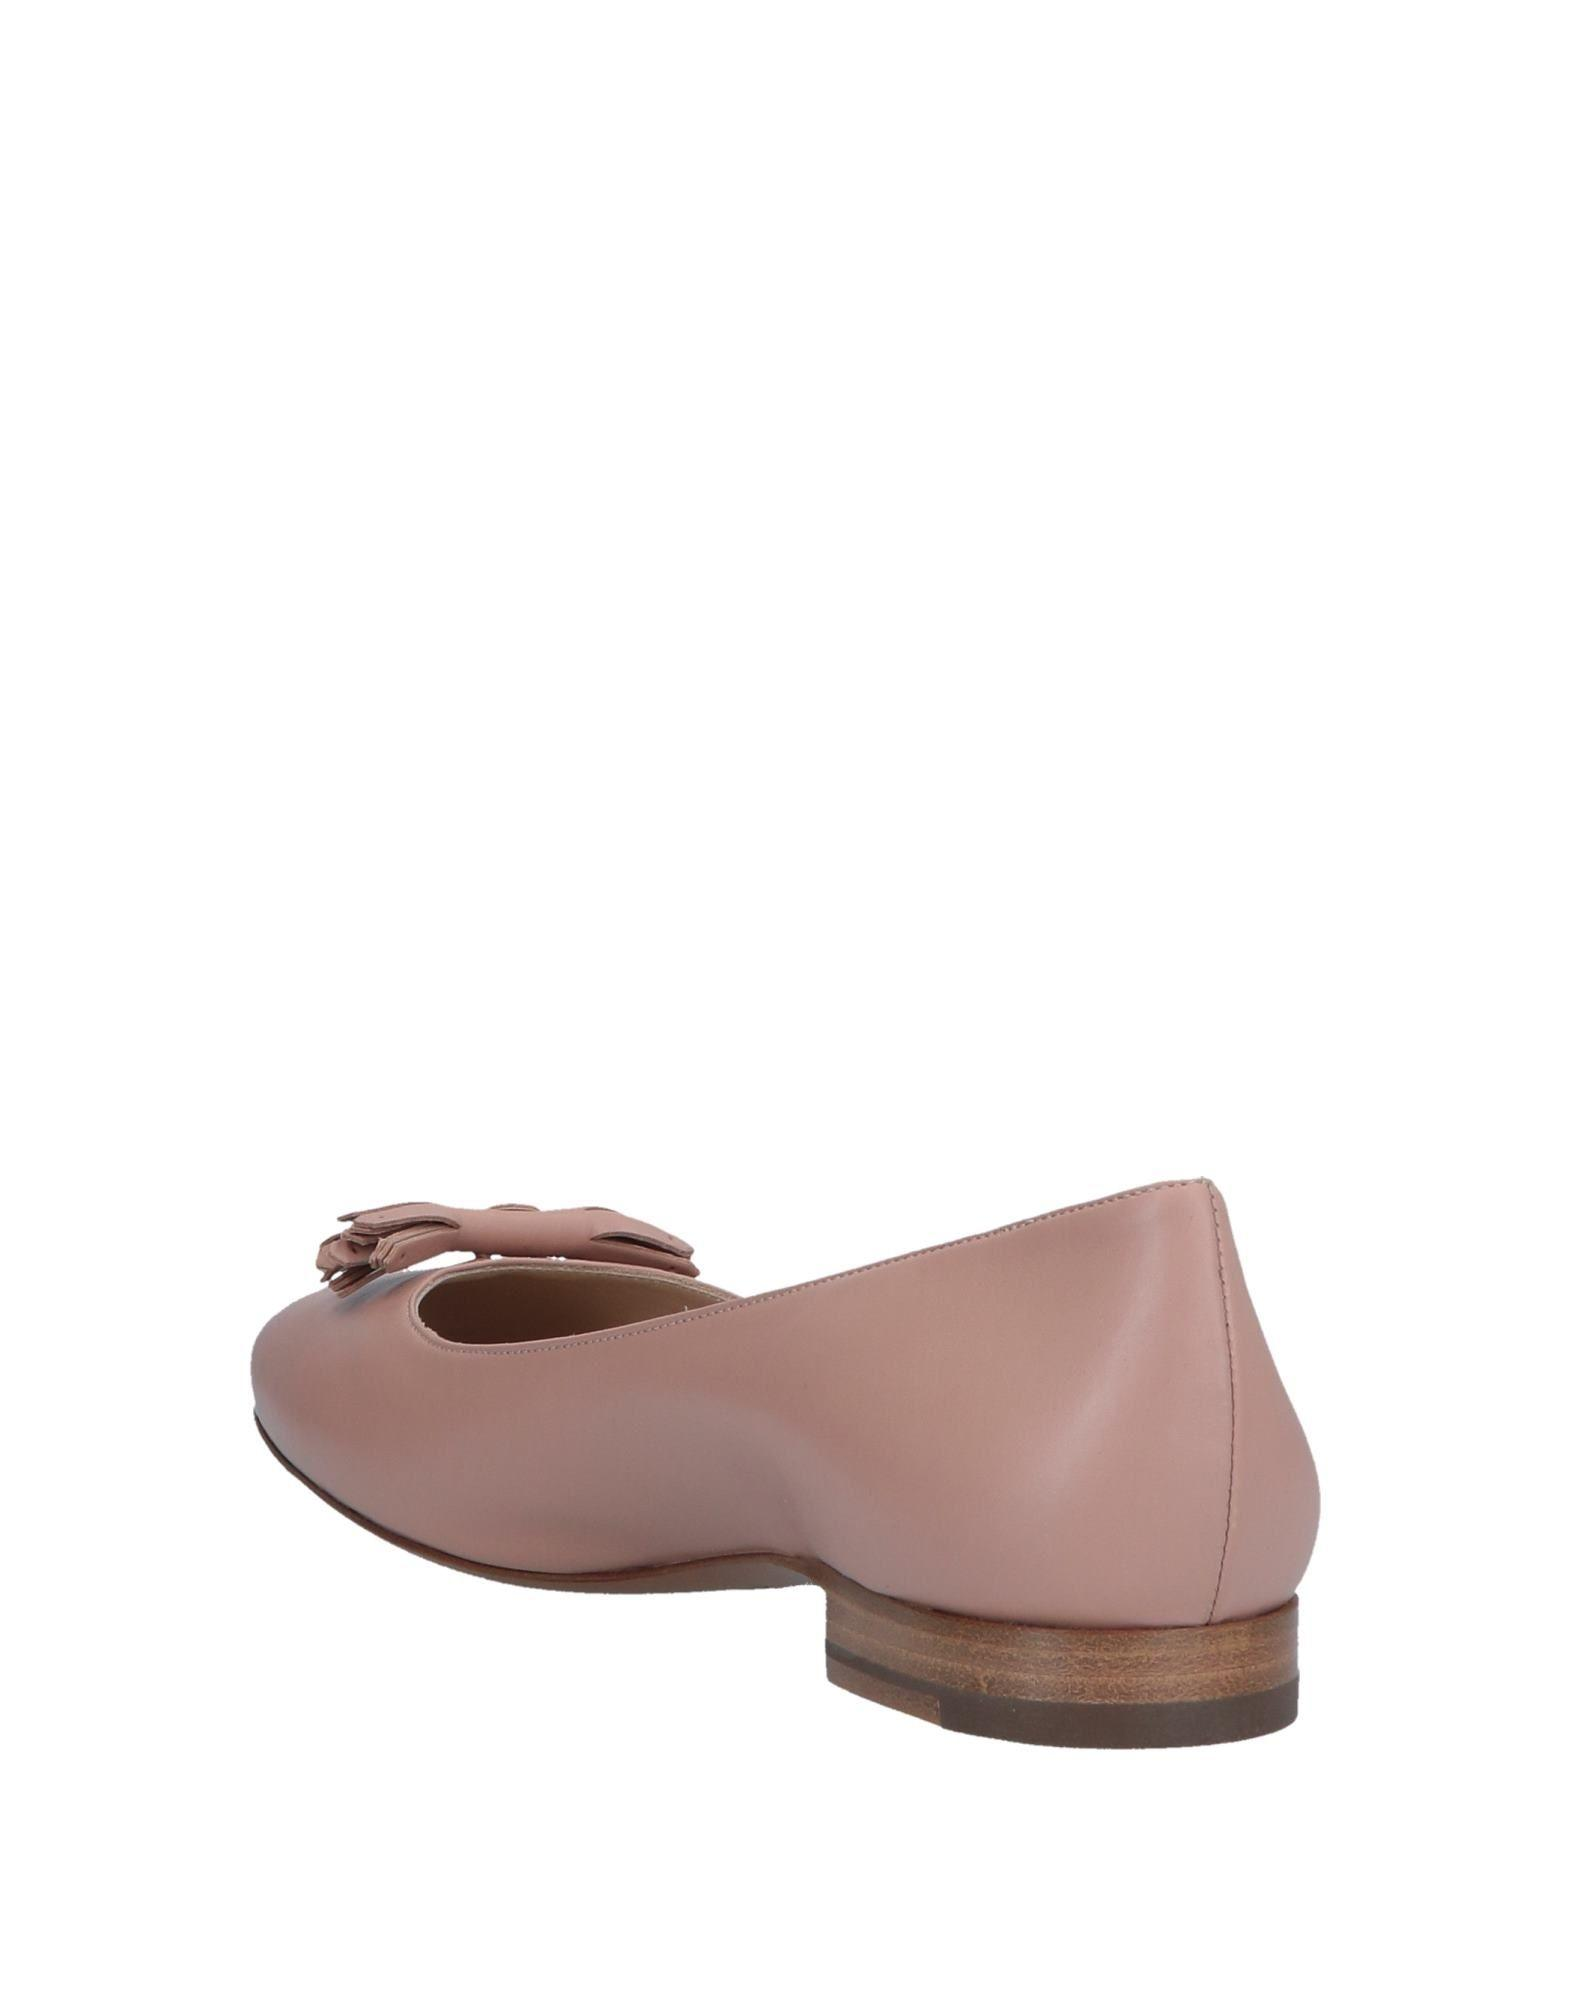 f61dc5be3 Lyst - Fratelli Rossetti Ballet Flats in Pink